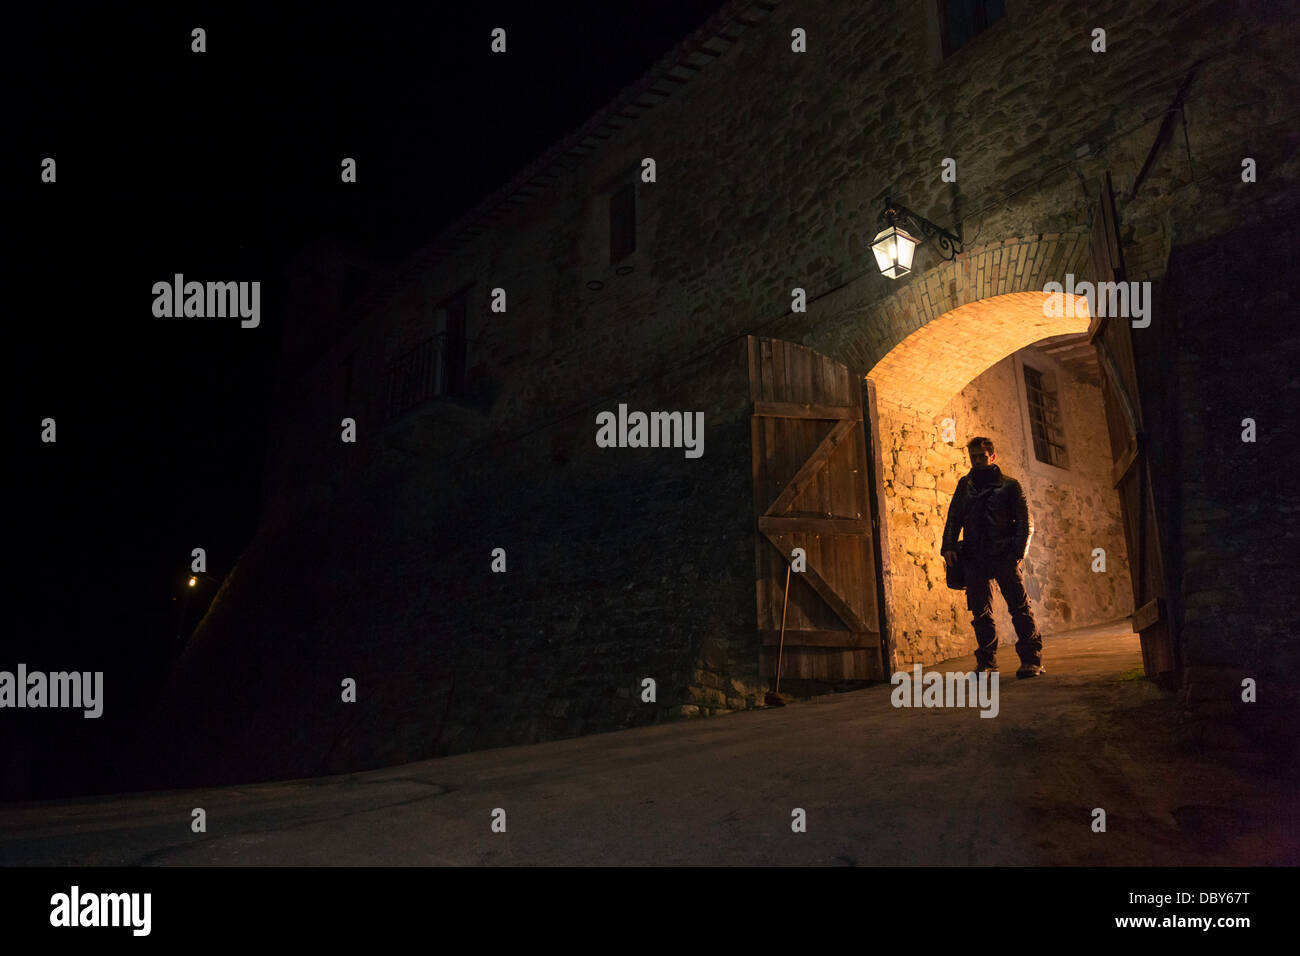 Man standing outside the gate of the medieval city - Stock Image